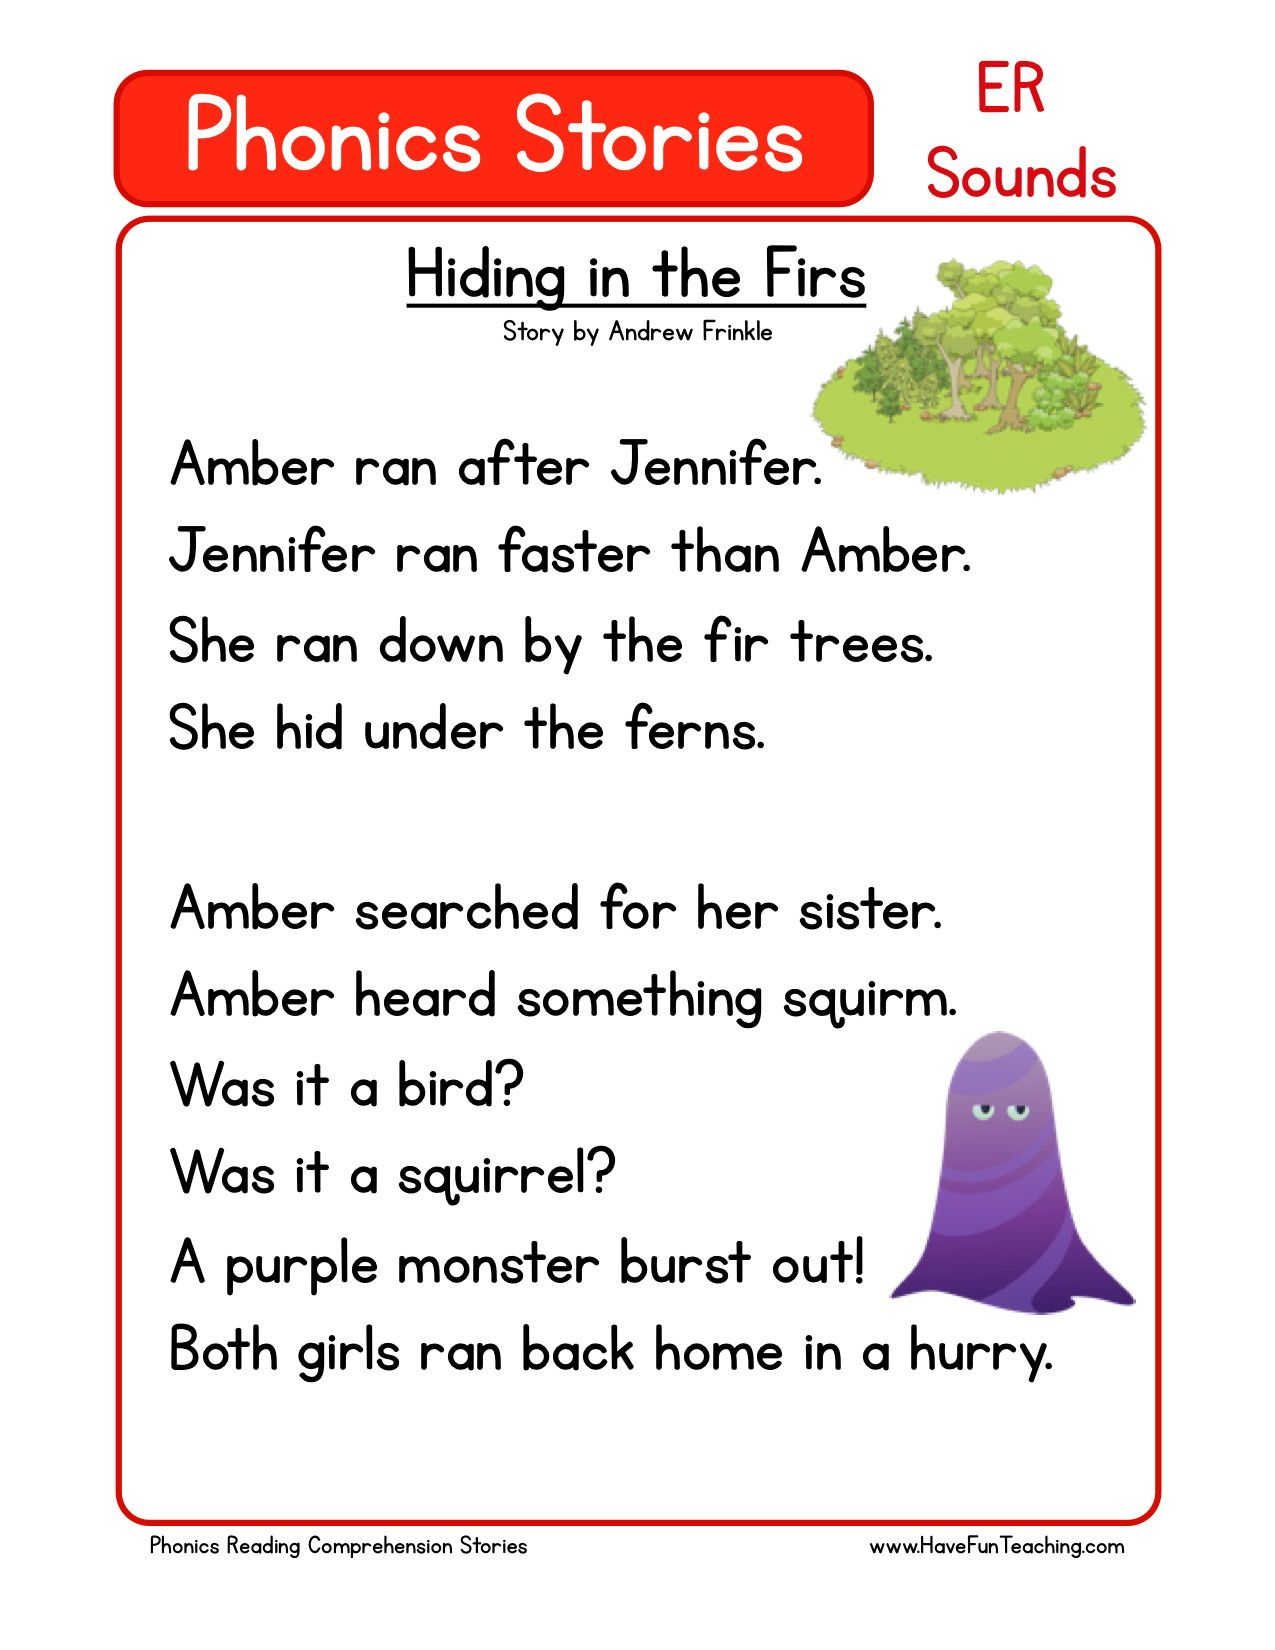 Worksheets Kindergarten Story this reading comprehension worksheet hiding in the firs is for teaching use